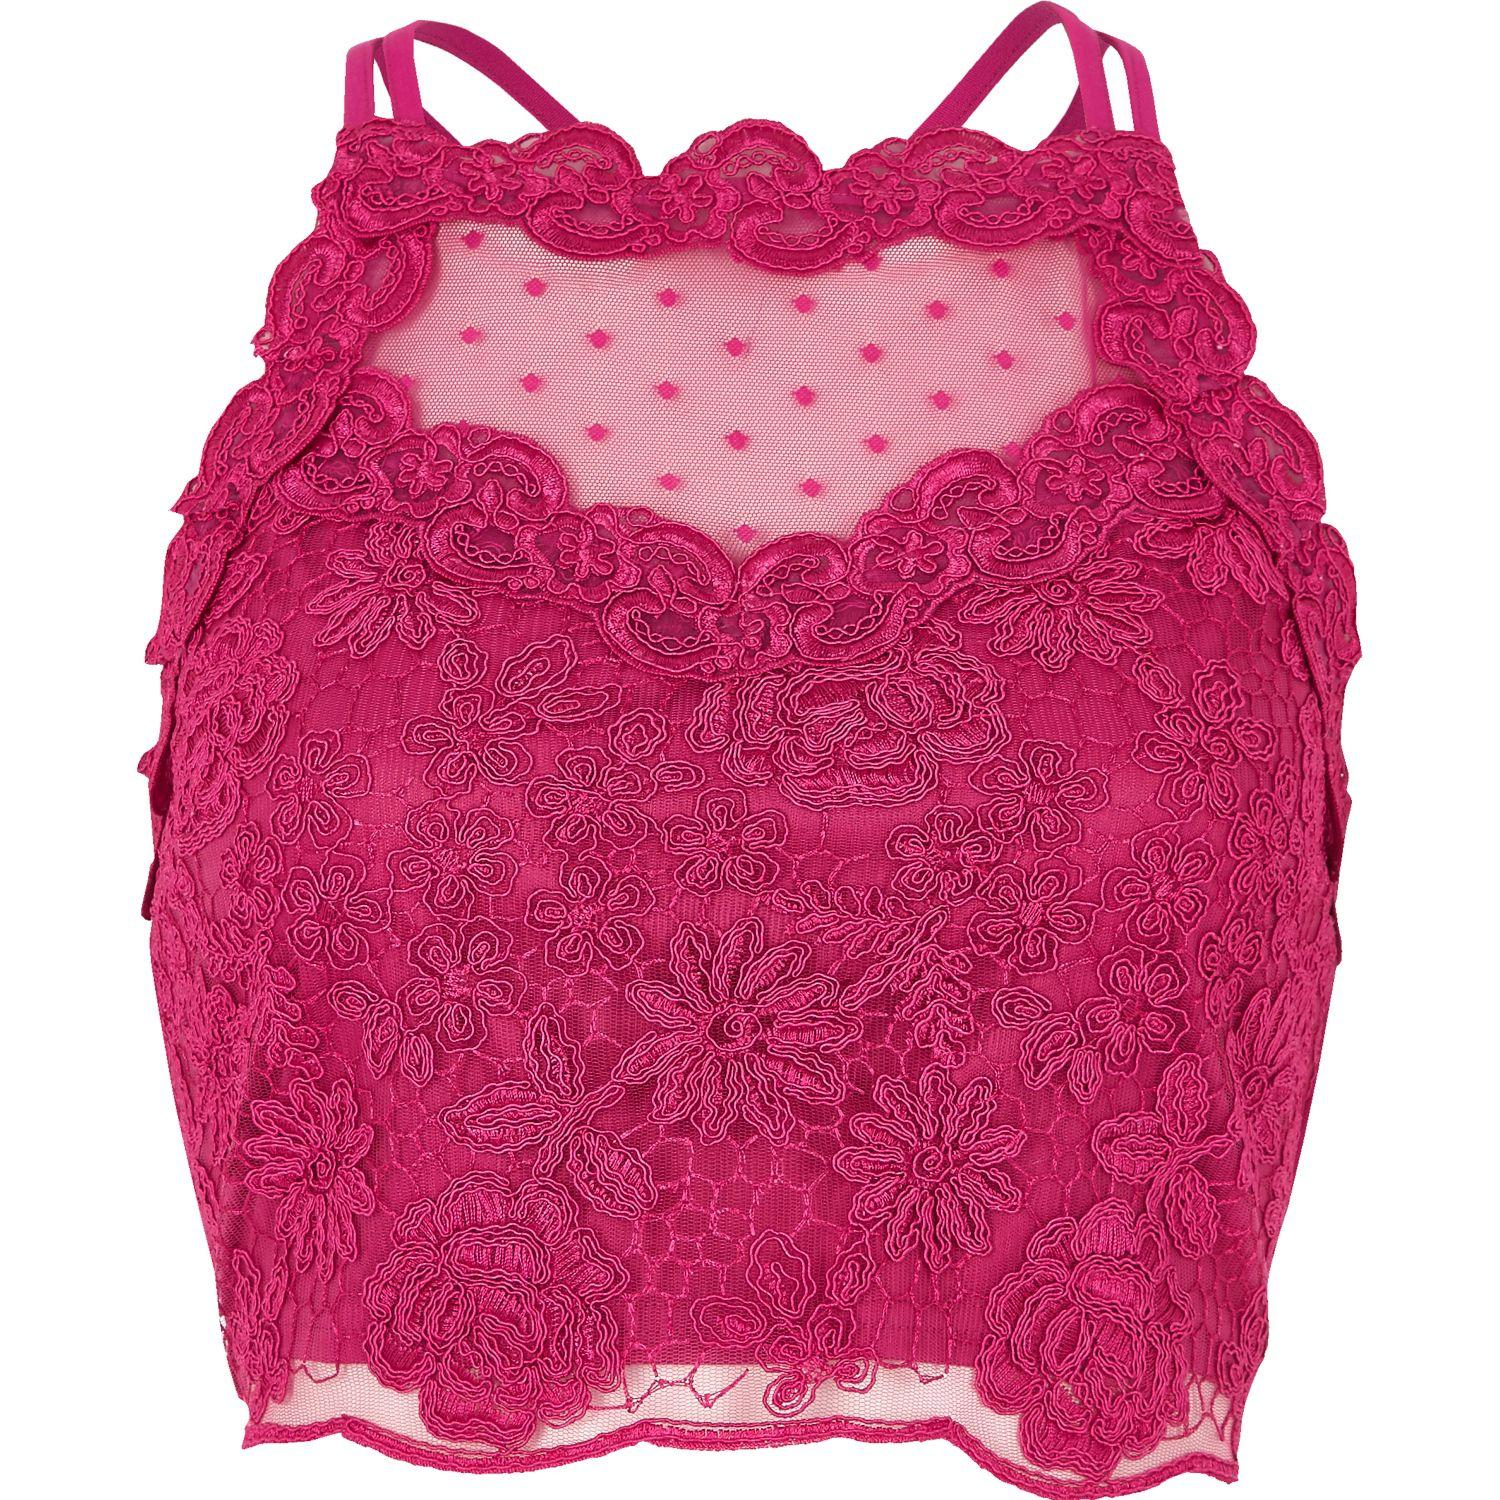 Lyst - River Island Pink Lace Mesh Crop Top in Pink